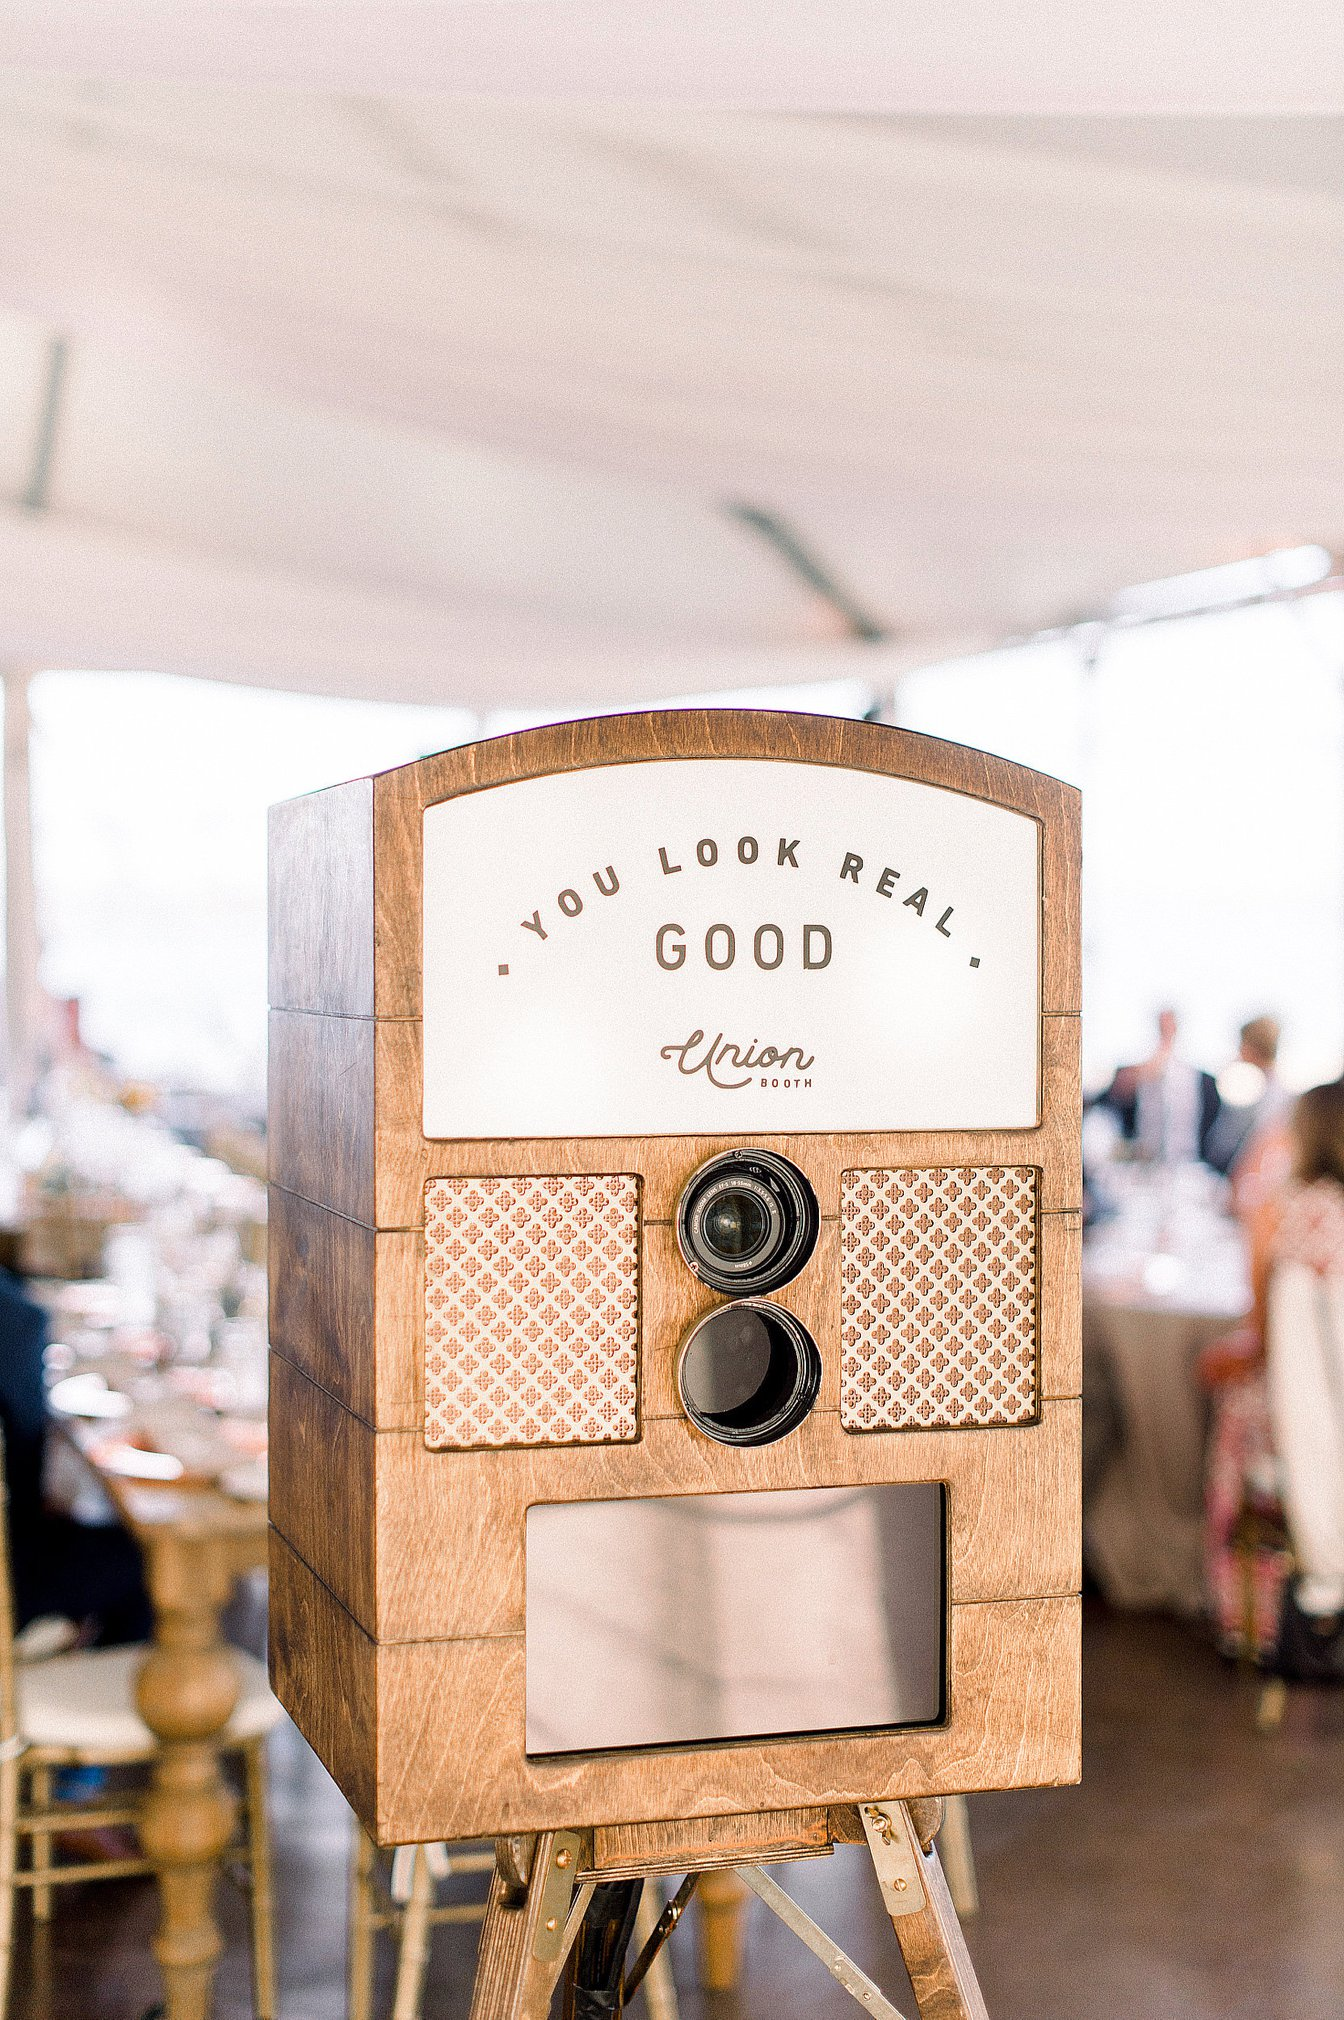 Vintage style wedding photo booth rental San Diego | Hawthorne photo booth for rental and purchase by Union Booth